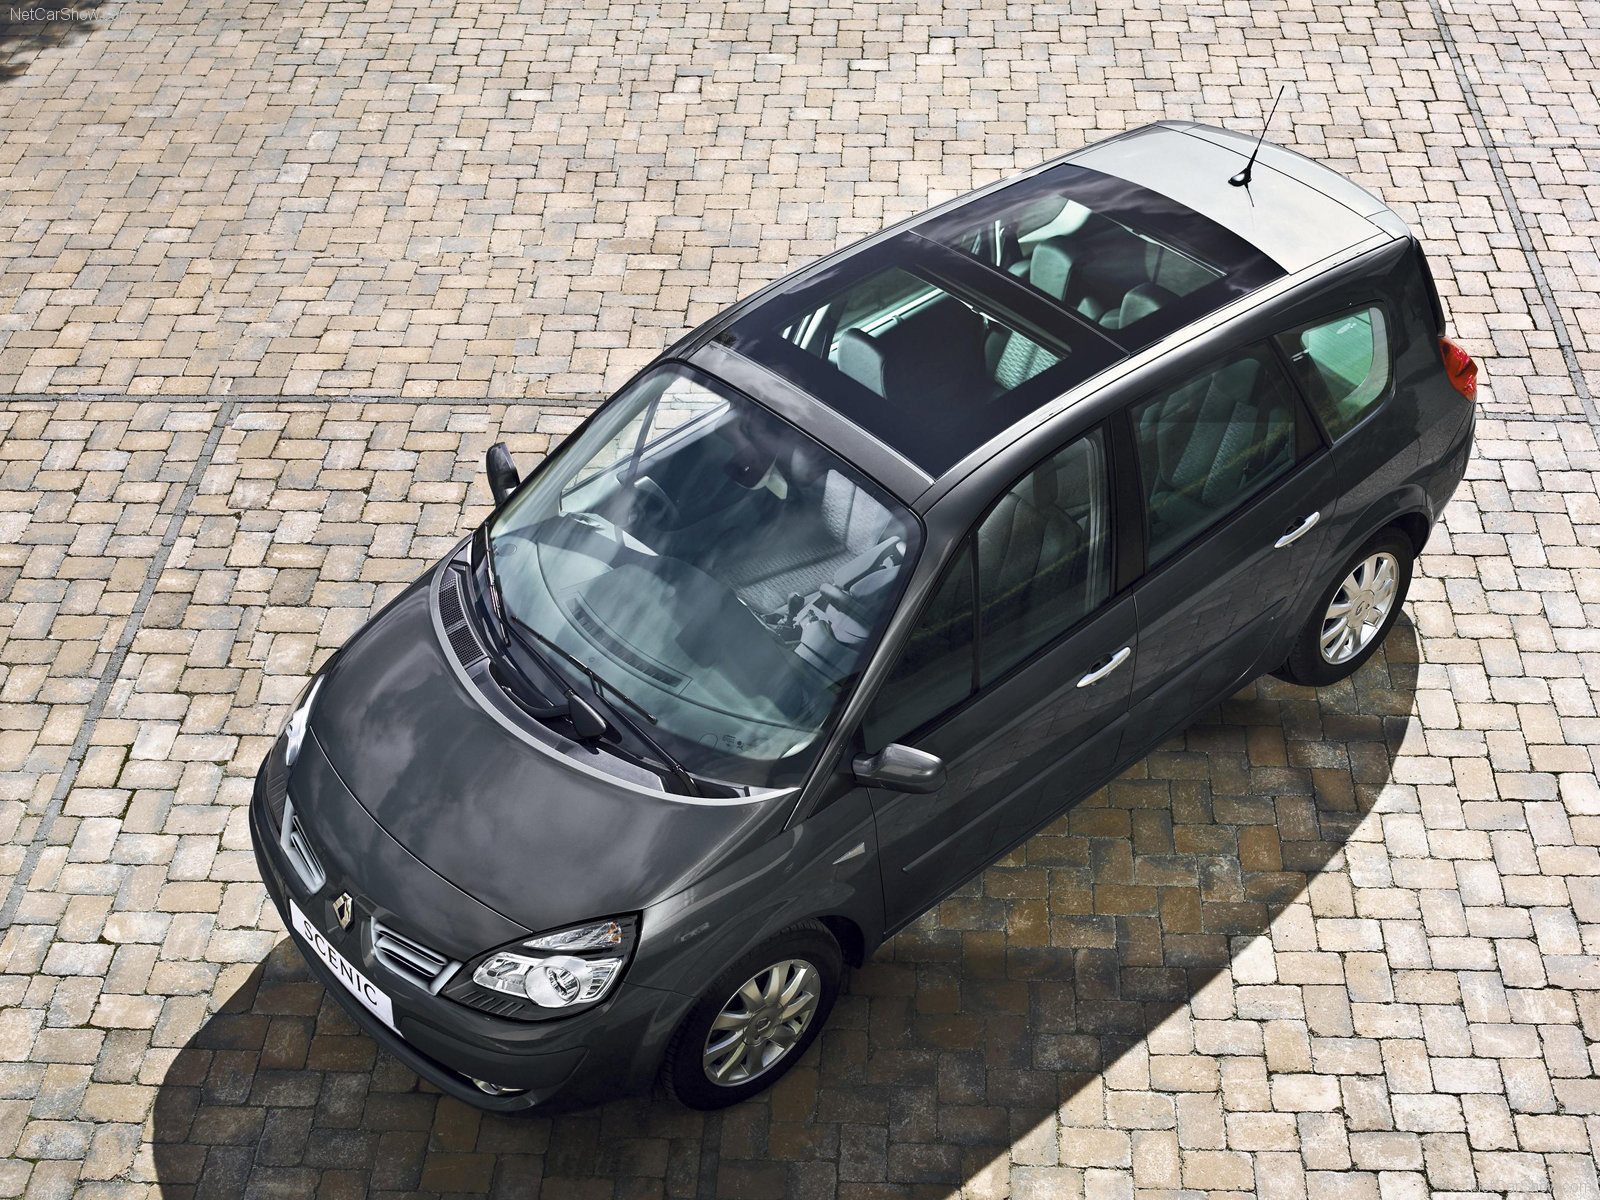 Renault Scenic Picture 56439 Renault Photo Gallery